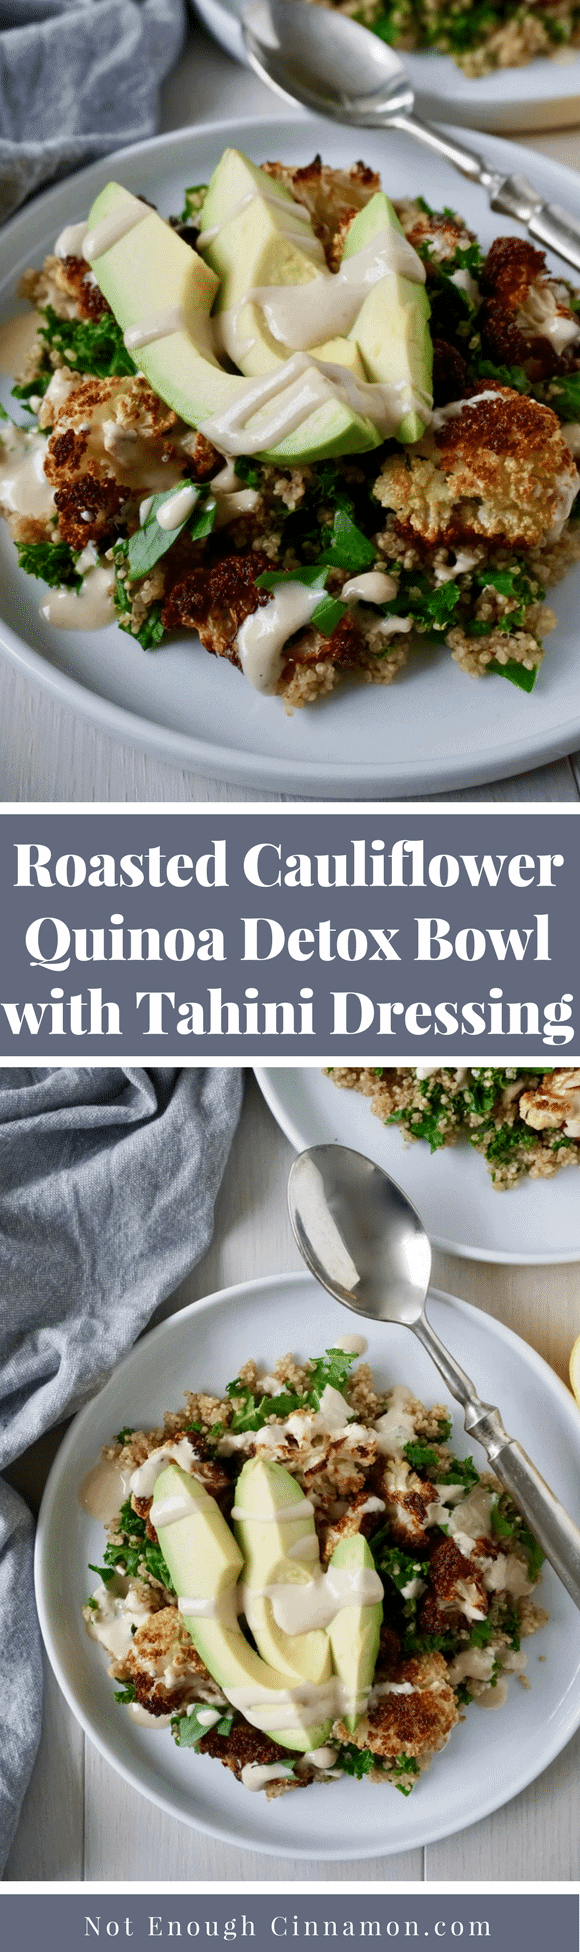 Roasted Cauliflower & Quinoa Detox Bowl with Tahini Dressing | A tasty detox bowl made with oven-roasted cauliflower, quinoa, kale, and an easy tahini sauce. It's filling, healthy and delicious. The perfect recipe for meal prep #mealprep, #cleaneating, #meatleass, #quinoarecipes, #roastedcauliflower